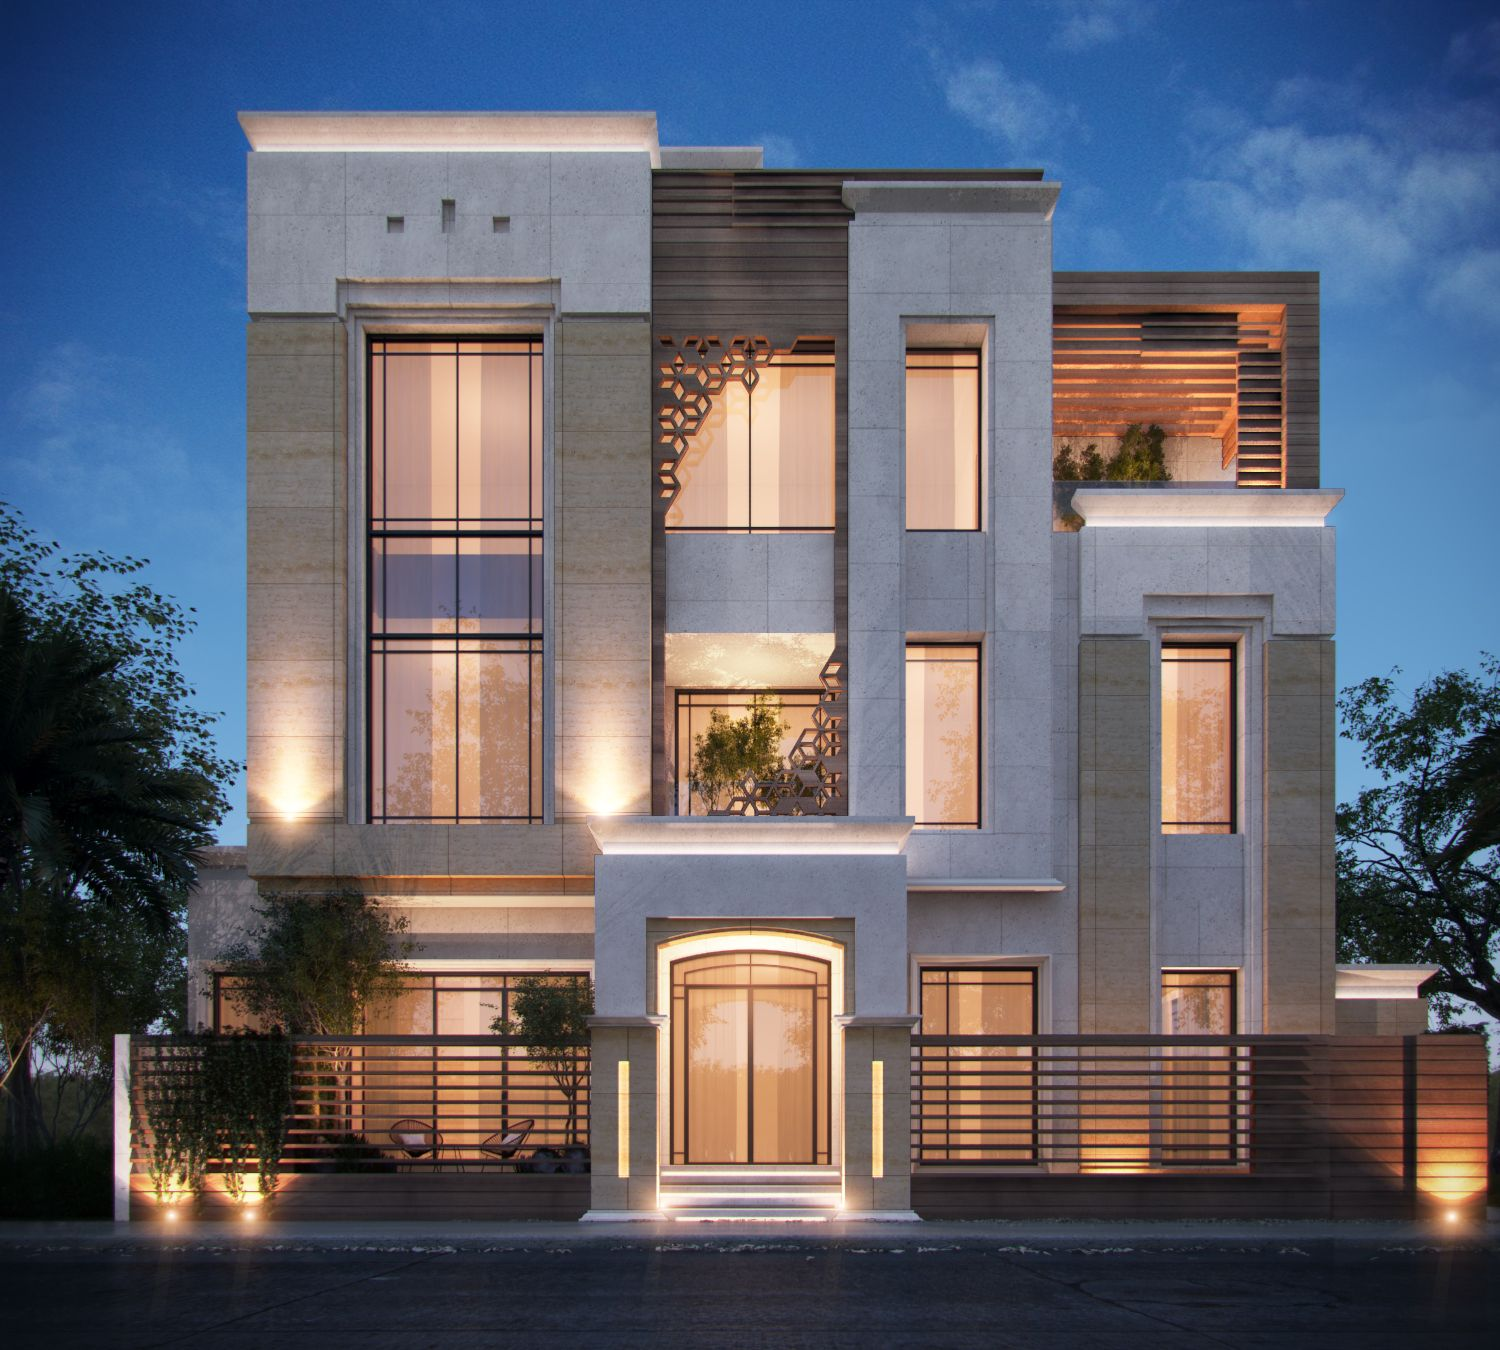 Private Villa Sarah Sadeq Architects Kuwait: 375 M Private Villa Kuwait Sarah Sadeq Architects